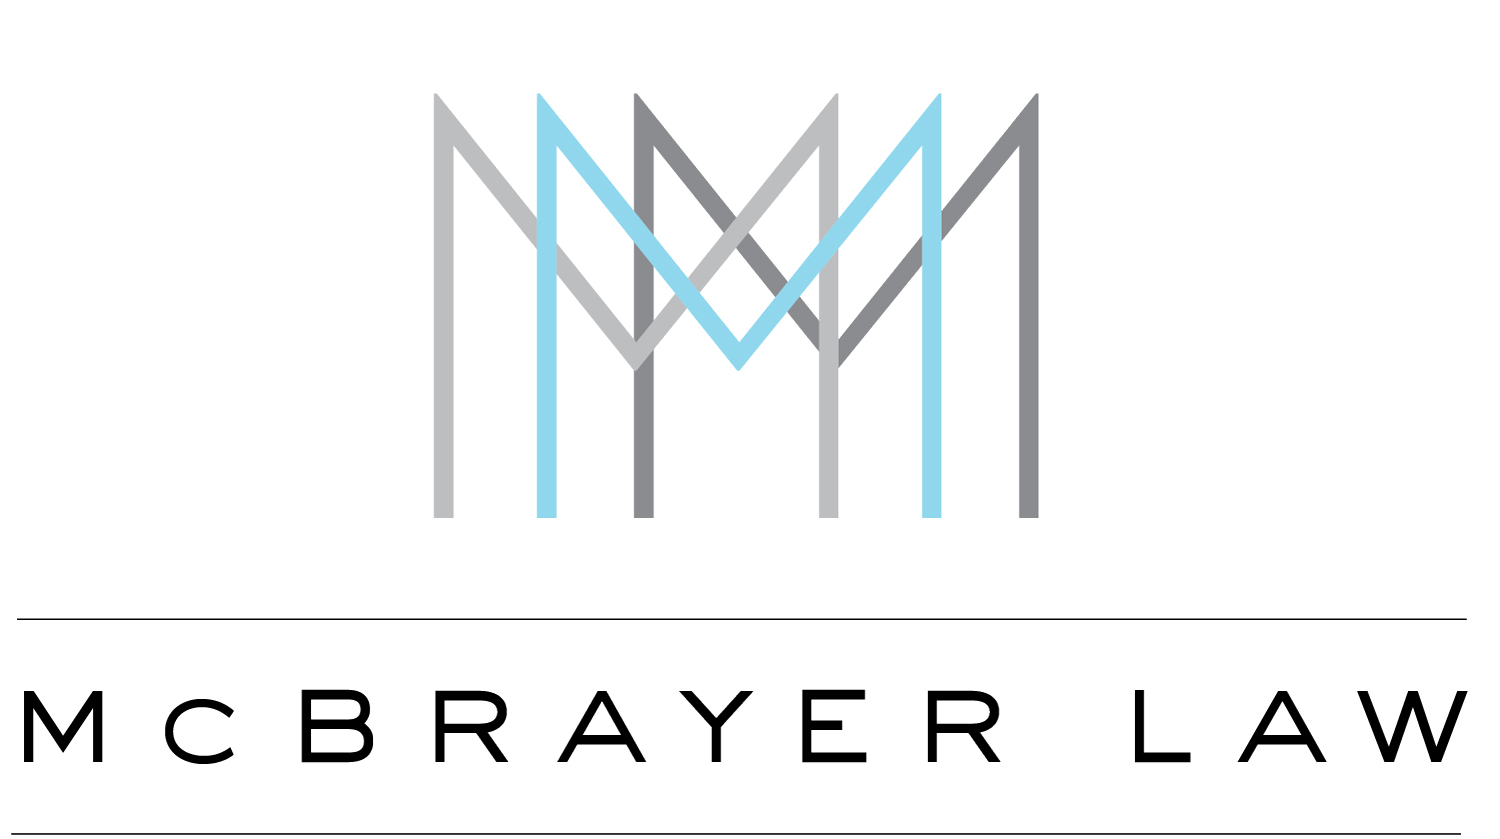 McBrayer Law